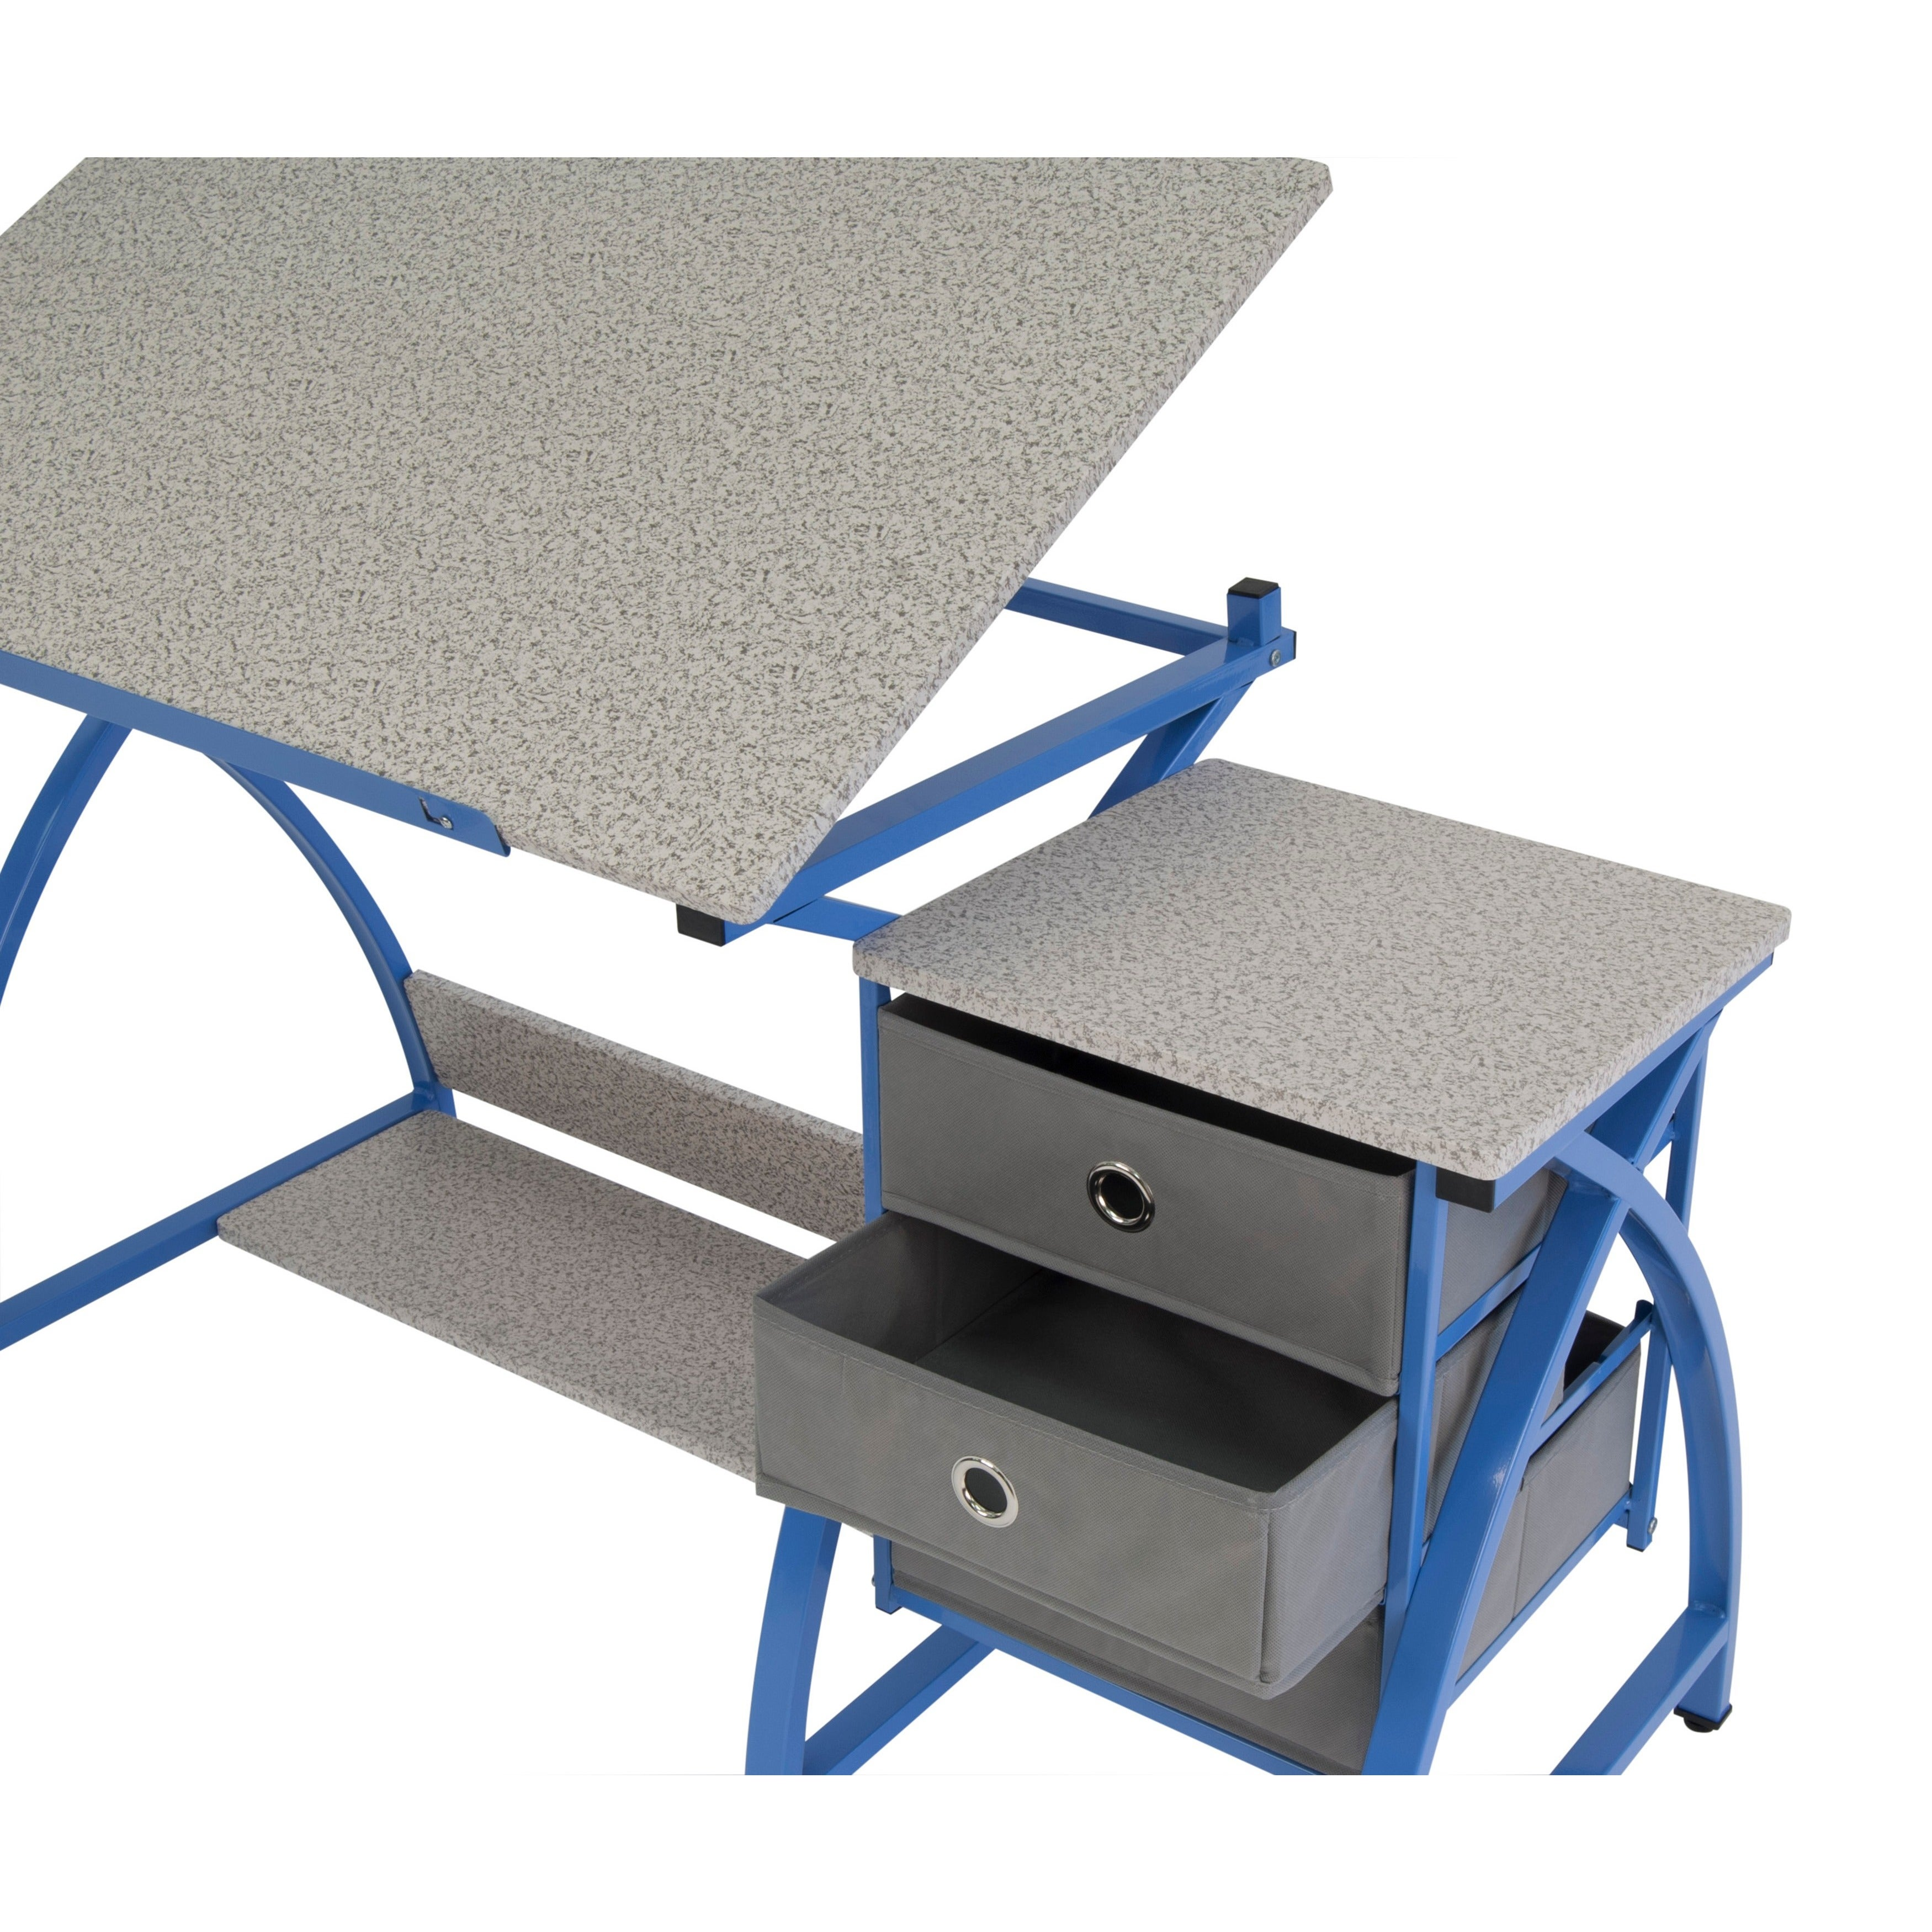 Shop Studio Designs Comet Blue Drafting Hobby Craft Table With Stool